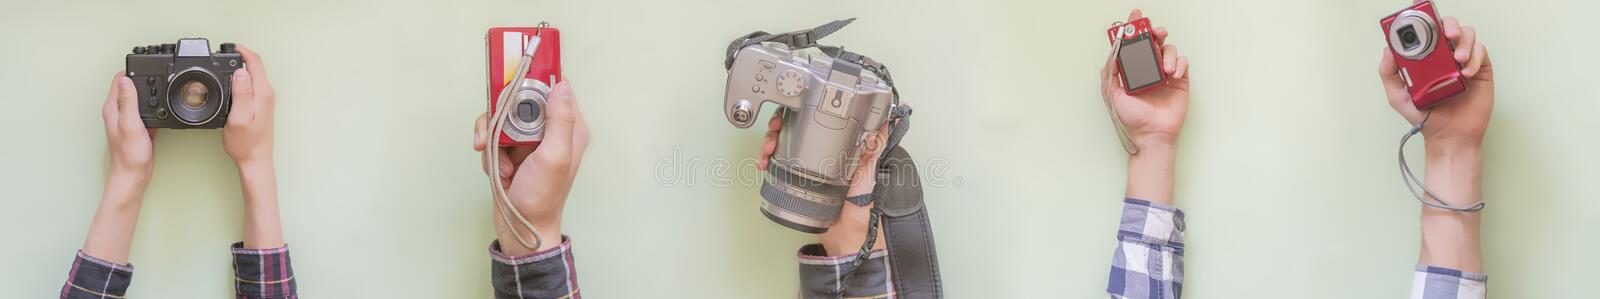 Multiple hands hold various cameras isolated creative f royalty free stock photo